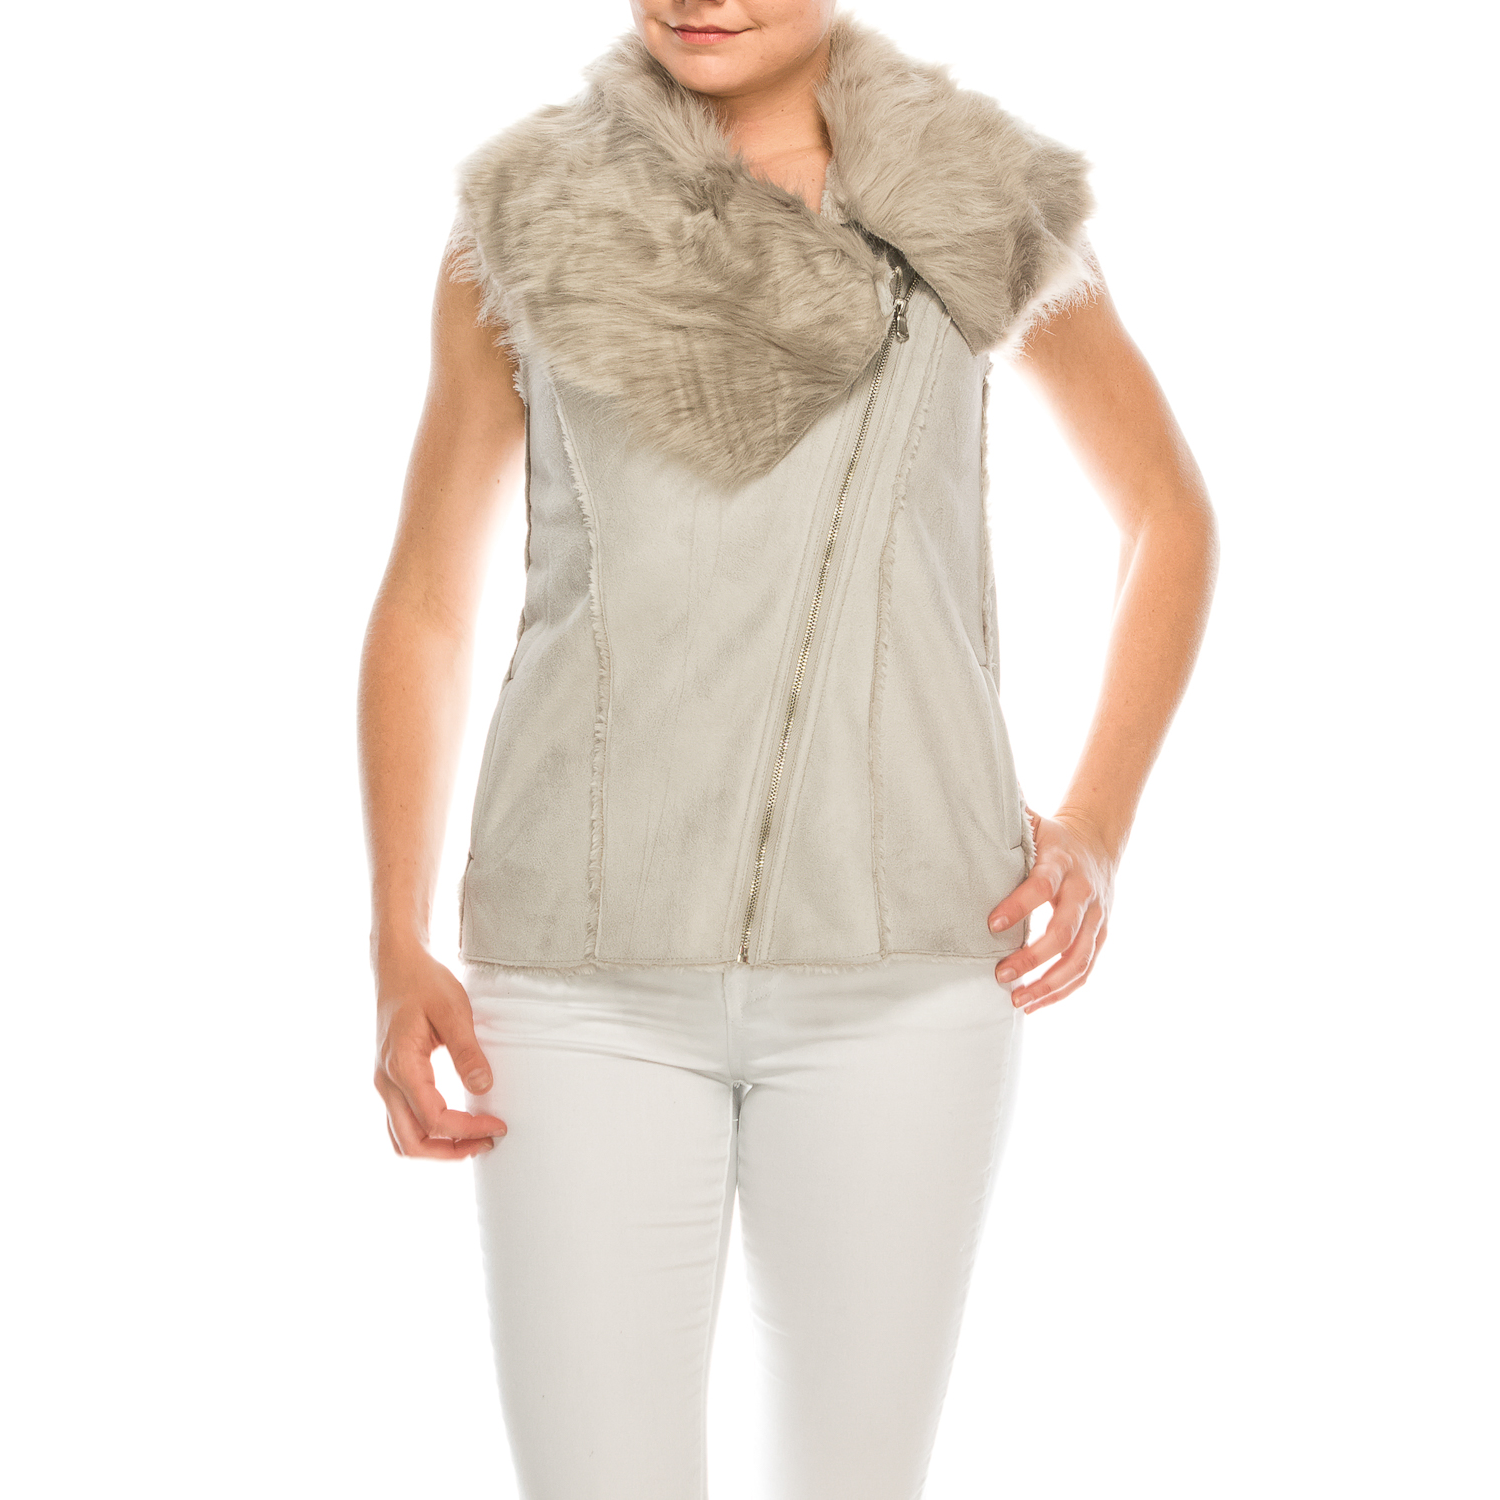 Fany-Urban Diction Grey Faux Fur Neck Vest (S-XL)